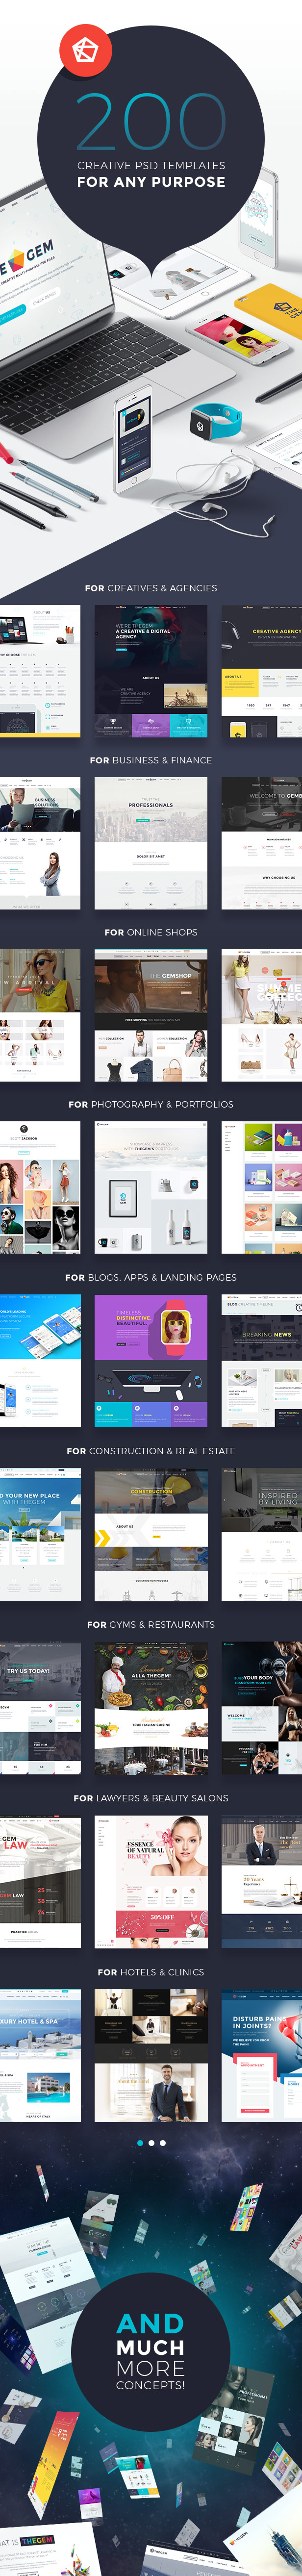 TheGem - Creative Multi-Purpose PSD Template - 2